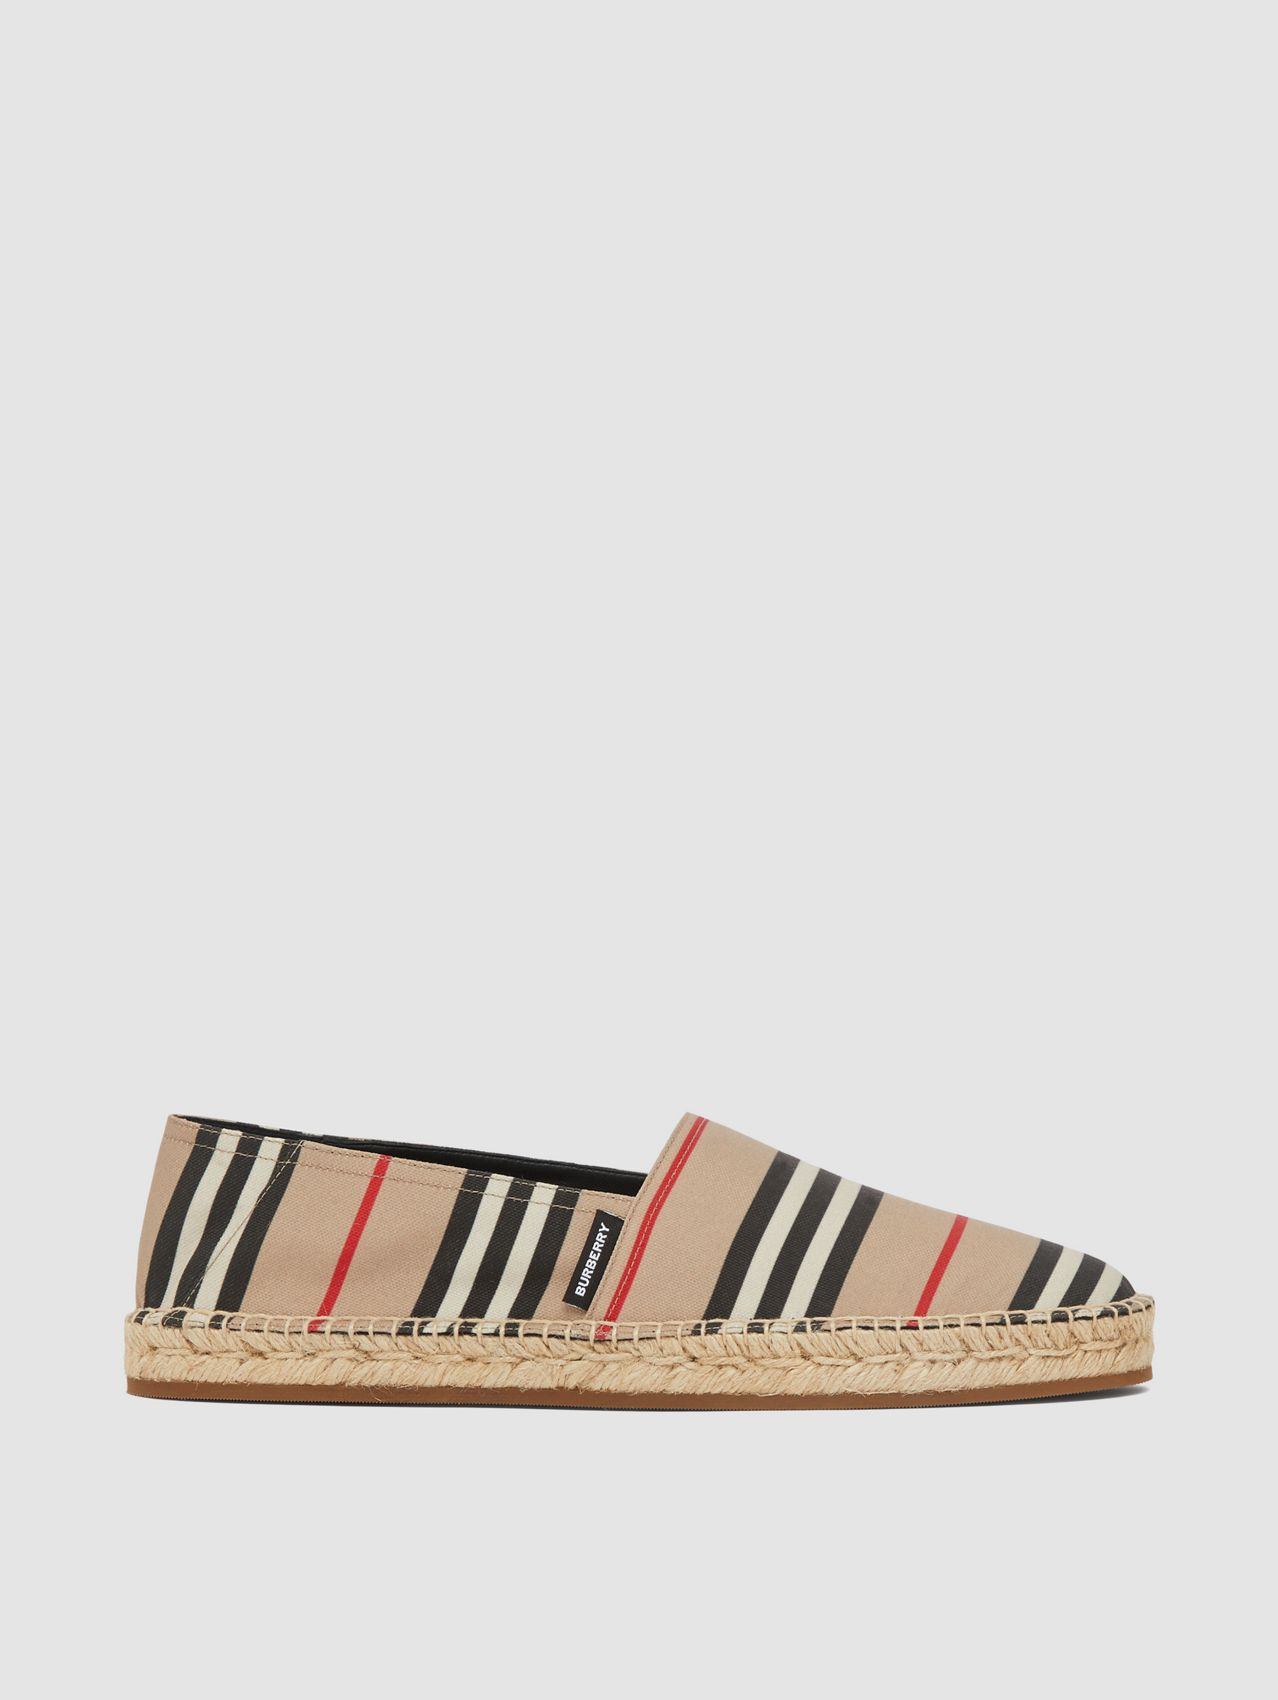 Icon Stripe Espadrilles in Archive Beige